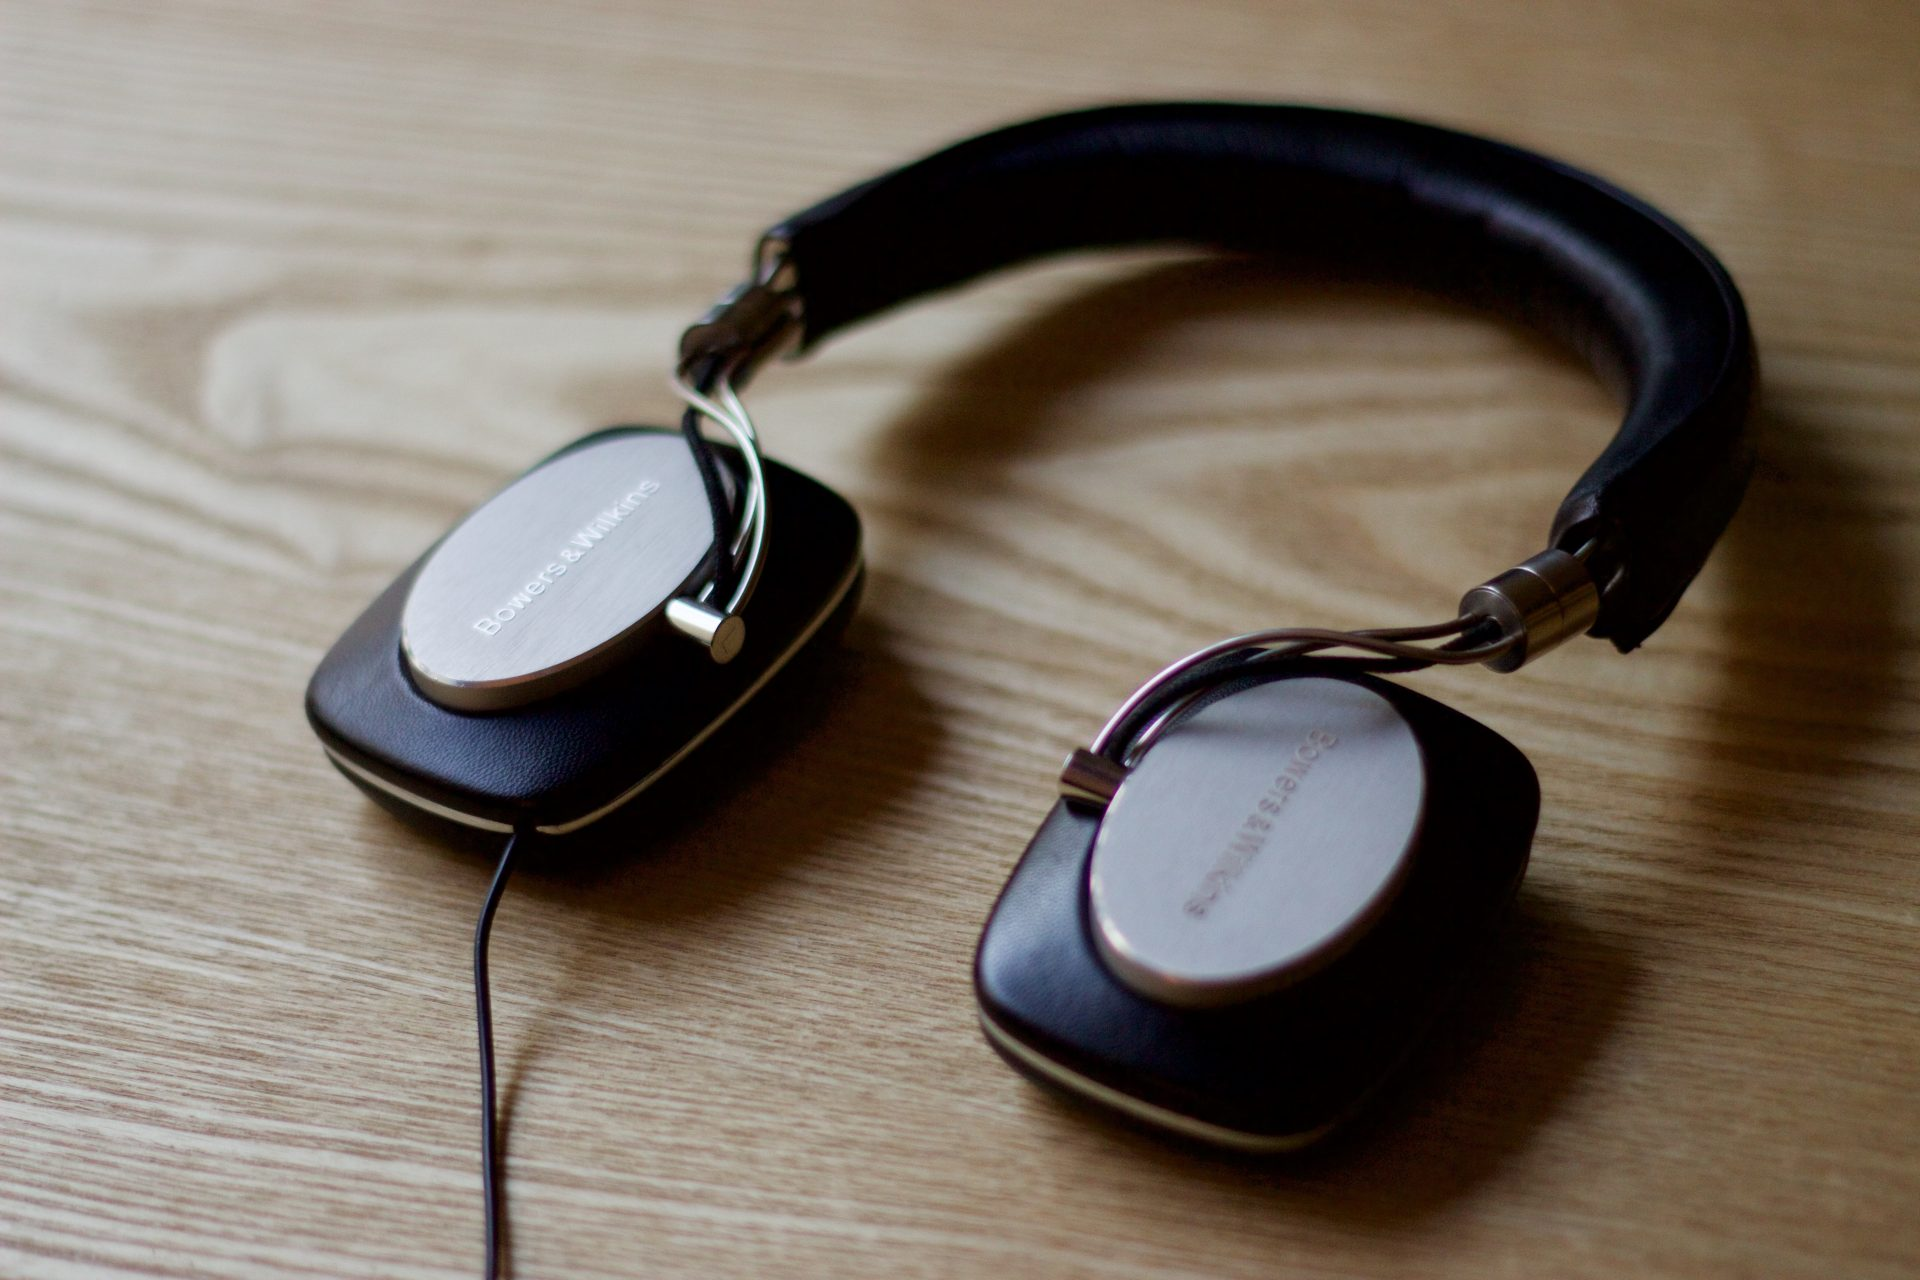 P5 Bowers & Wilkins